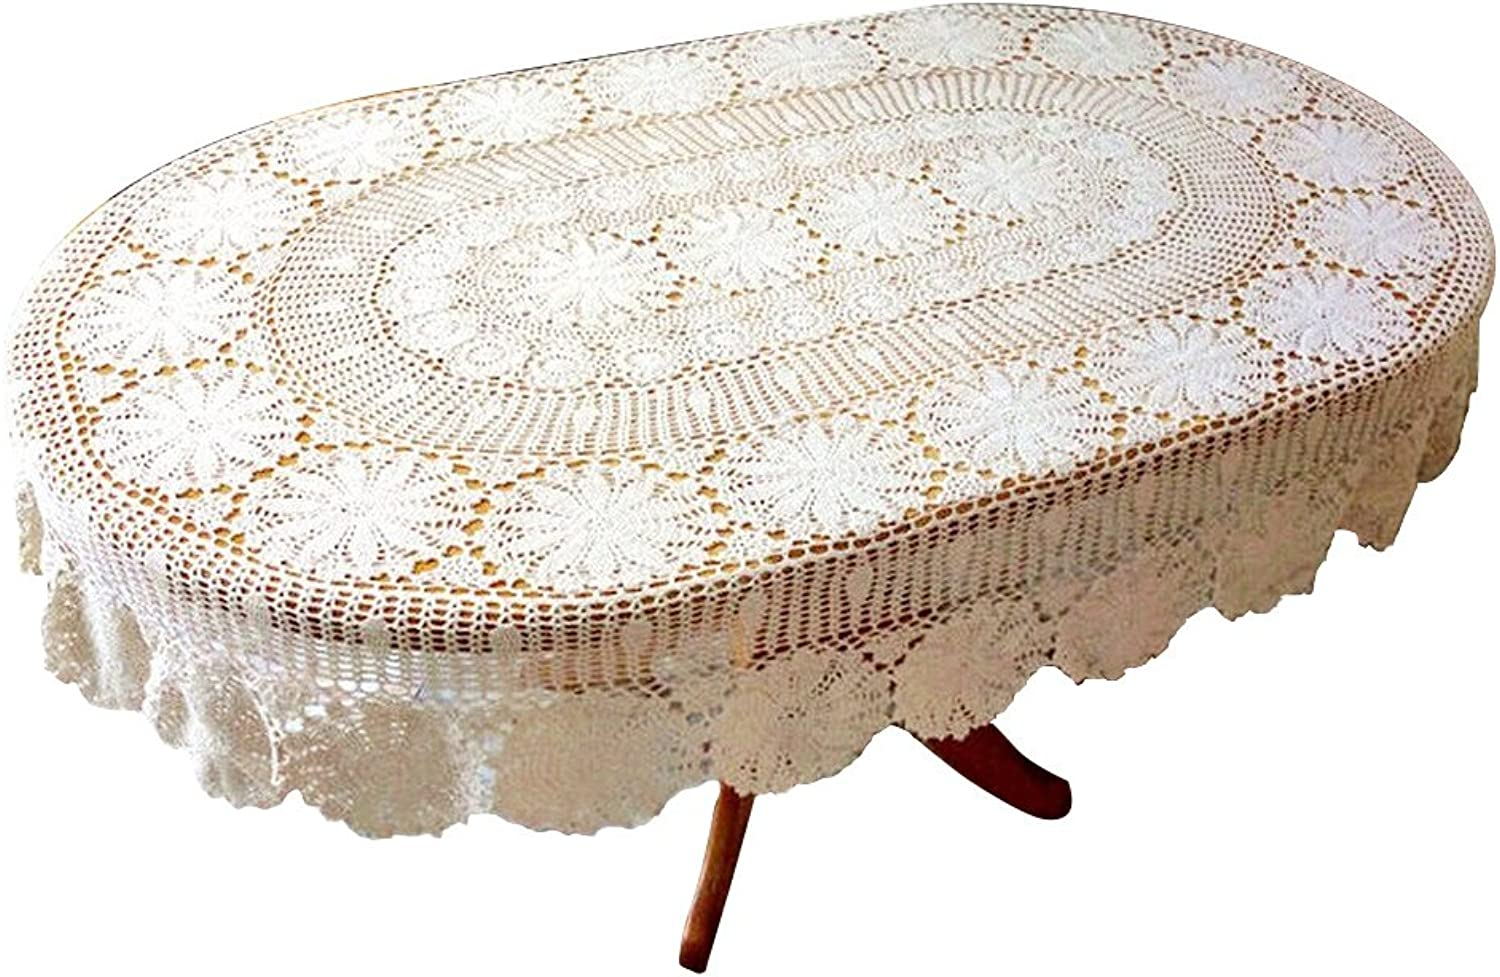 USTIDE Vintage Handmade Crochet Oval Tablecloth White Cotton Lace Table Overlays Elegant Wedding Party Table Decorations, 59 x82.6